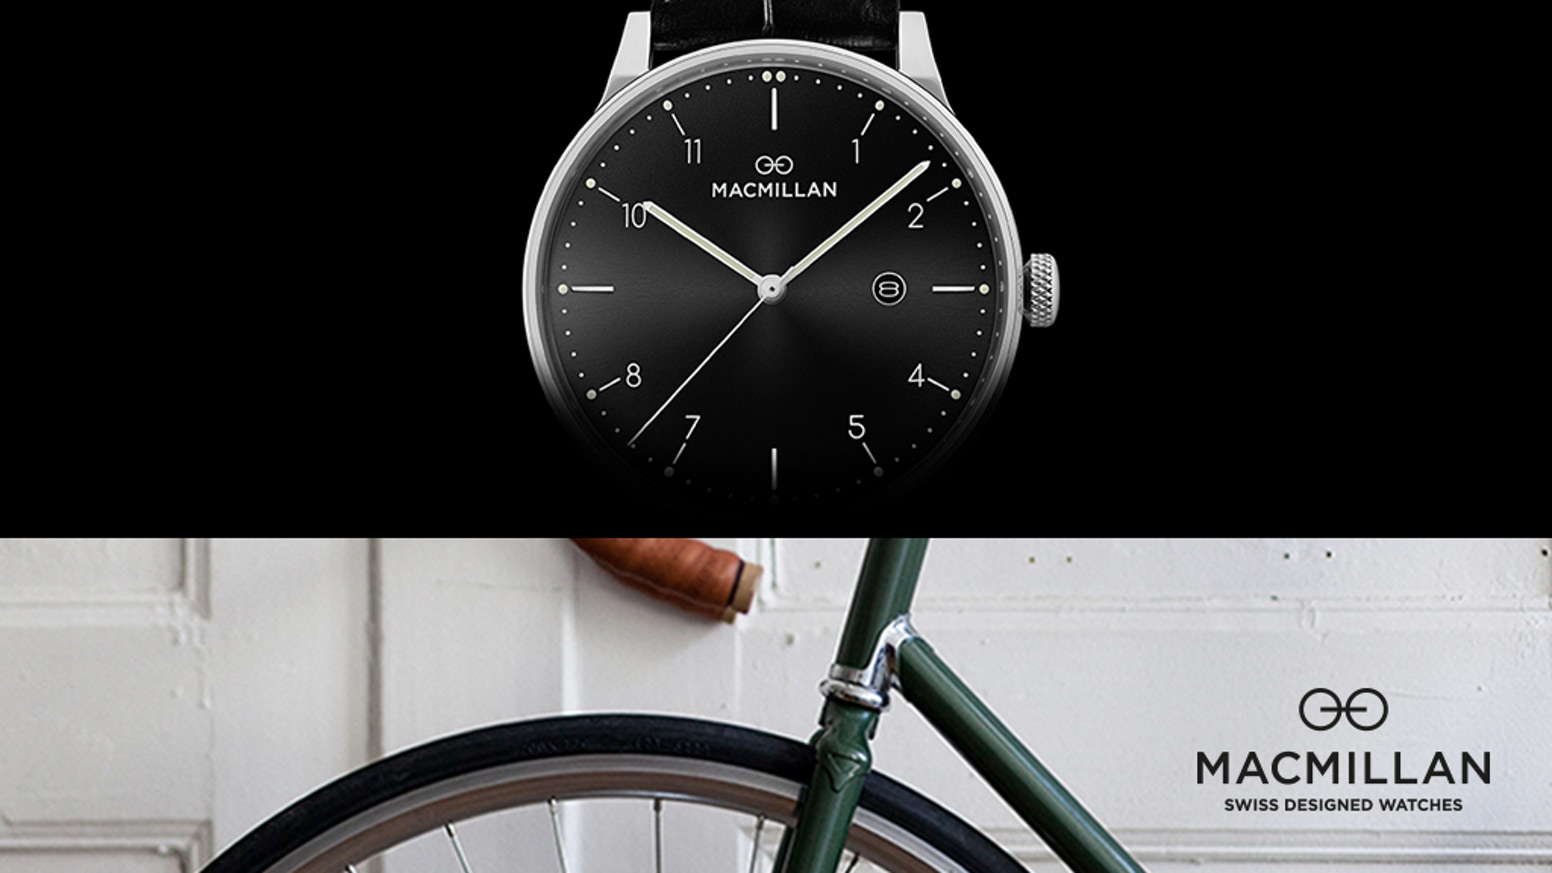 Macmillan explores a new vision of simplicity. We shape and provide swiss designed watches inspired by the world of urban cycling.